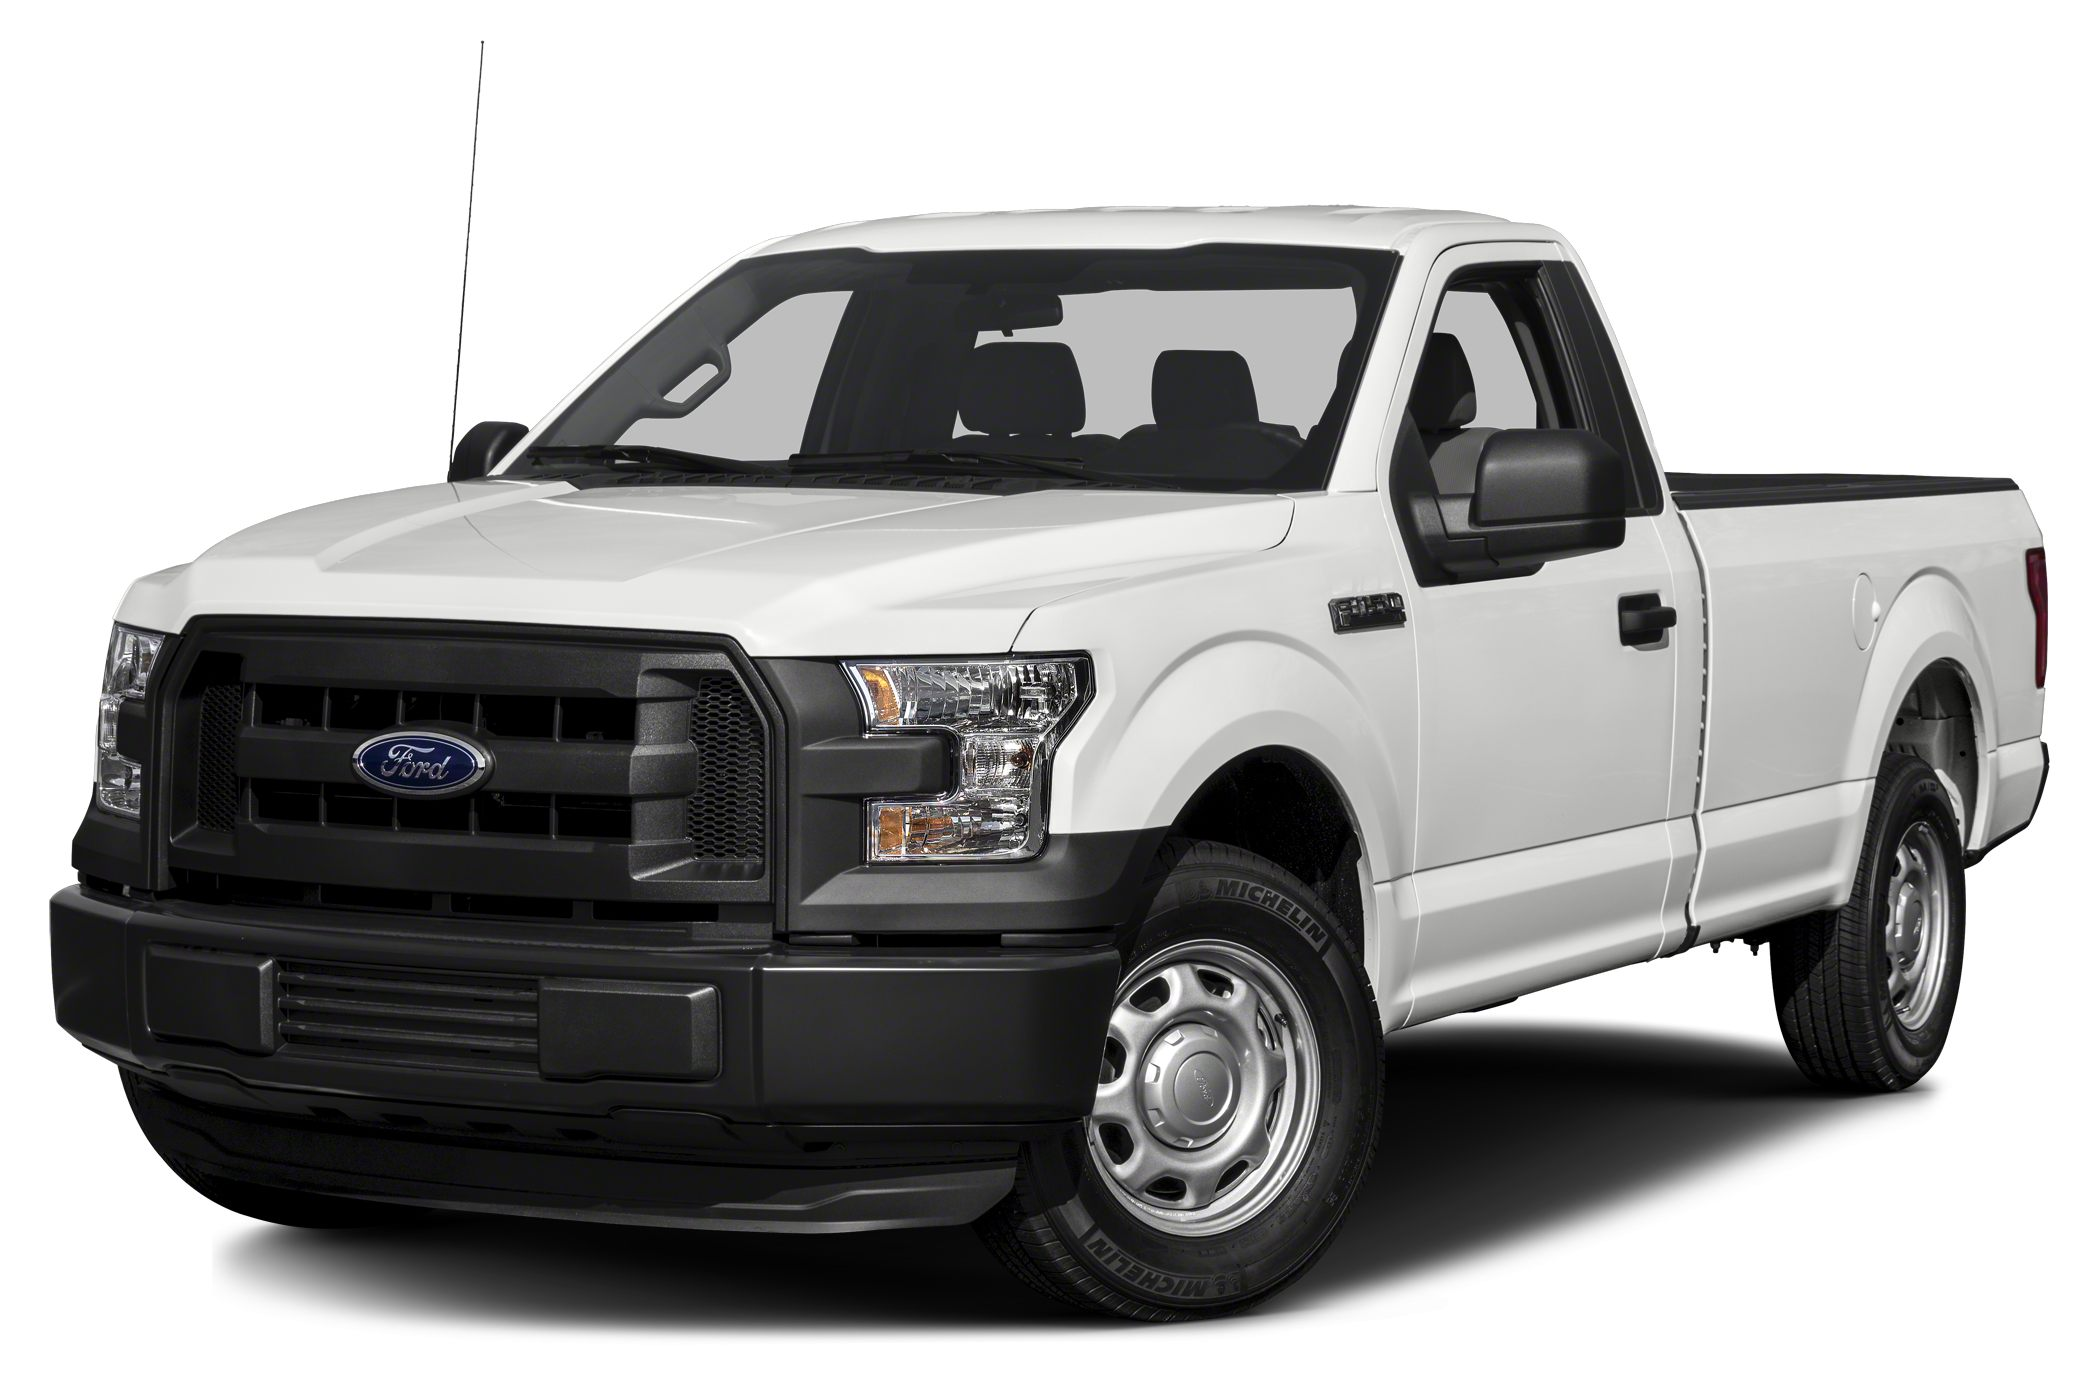 USC50FOT113A021001 Cool Review About 2004 ford F150 Extended Cab with Captivating Gallery Cars Review